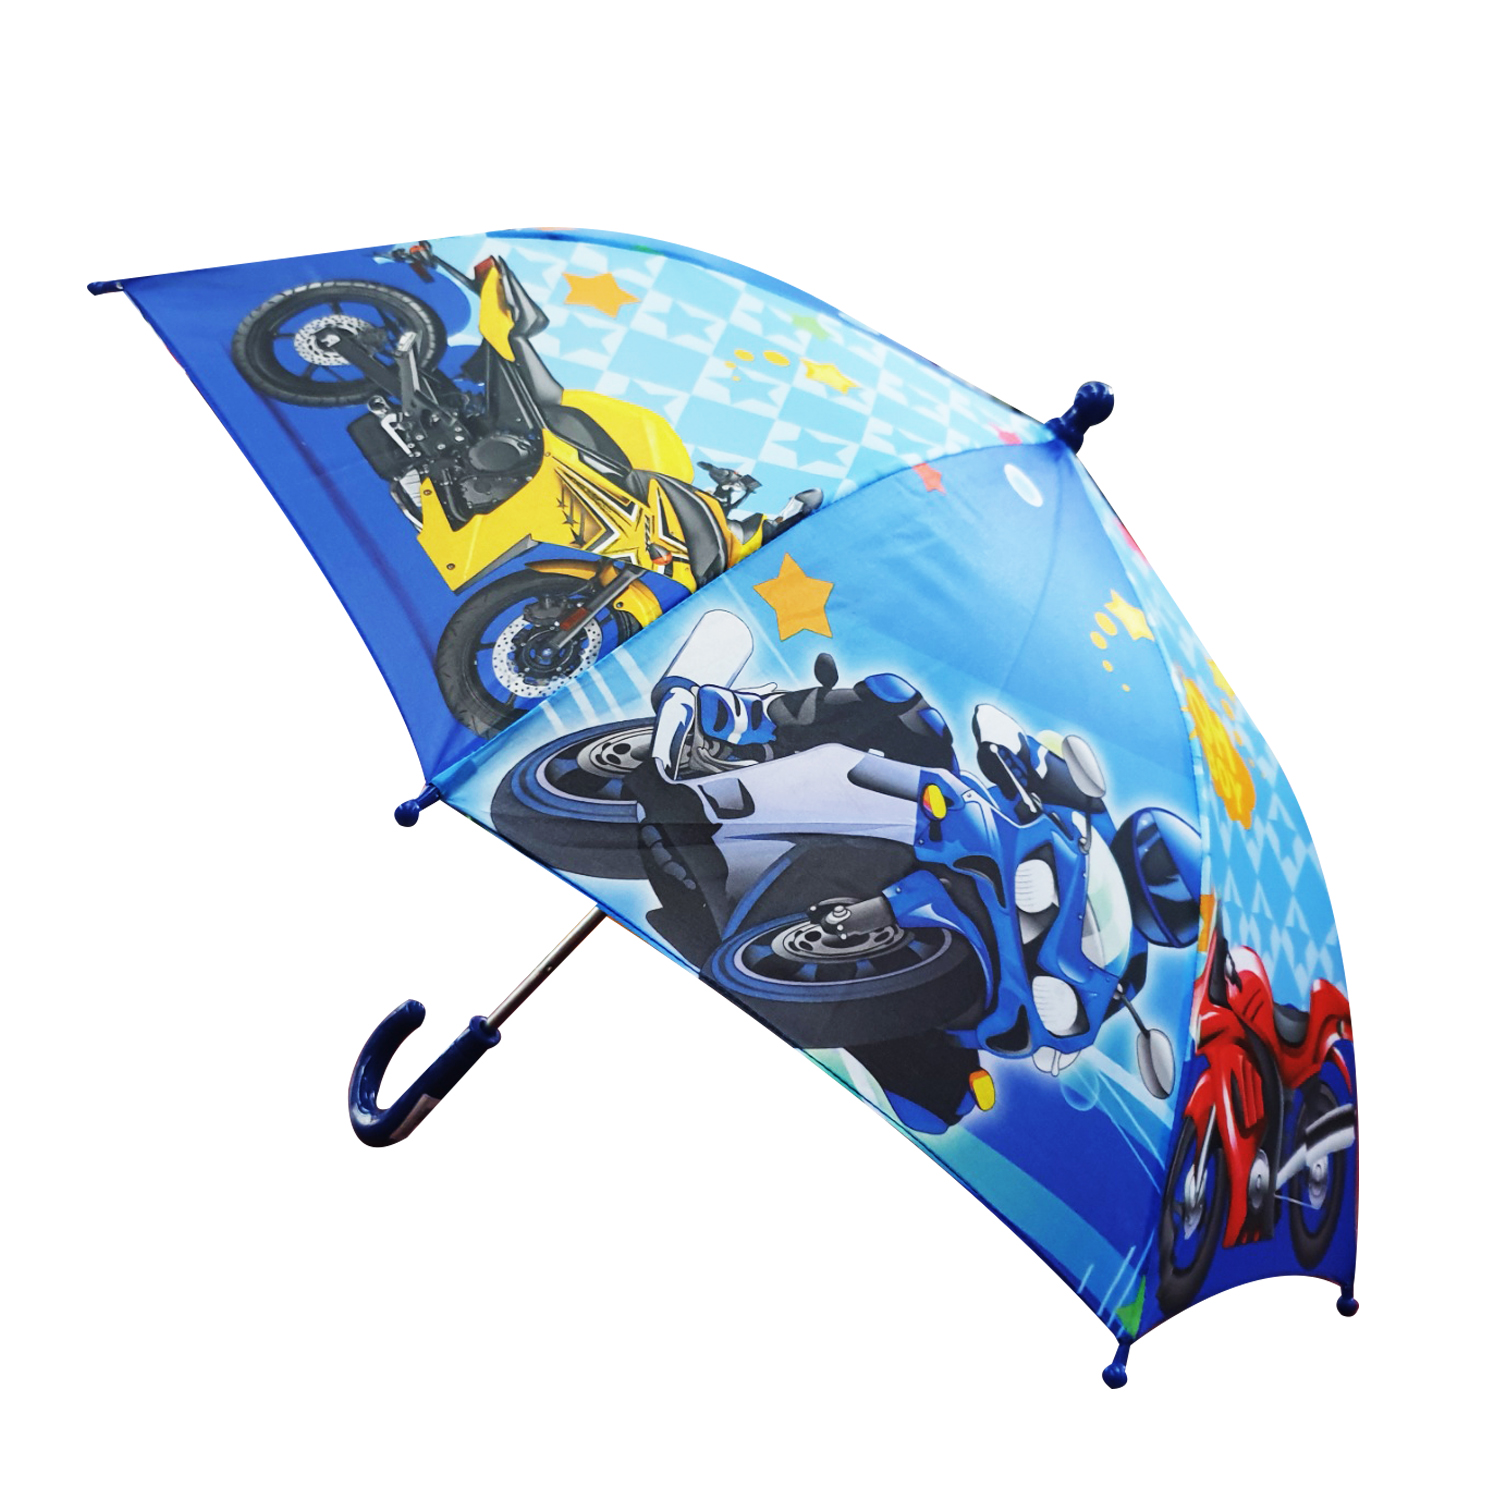 "43cm/7"" Children Umbrella #420.01.0140.83"